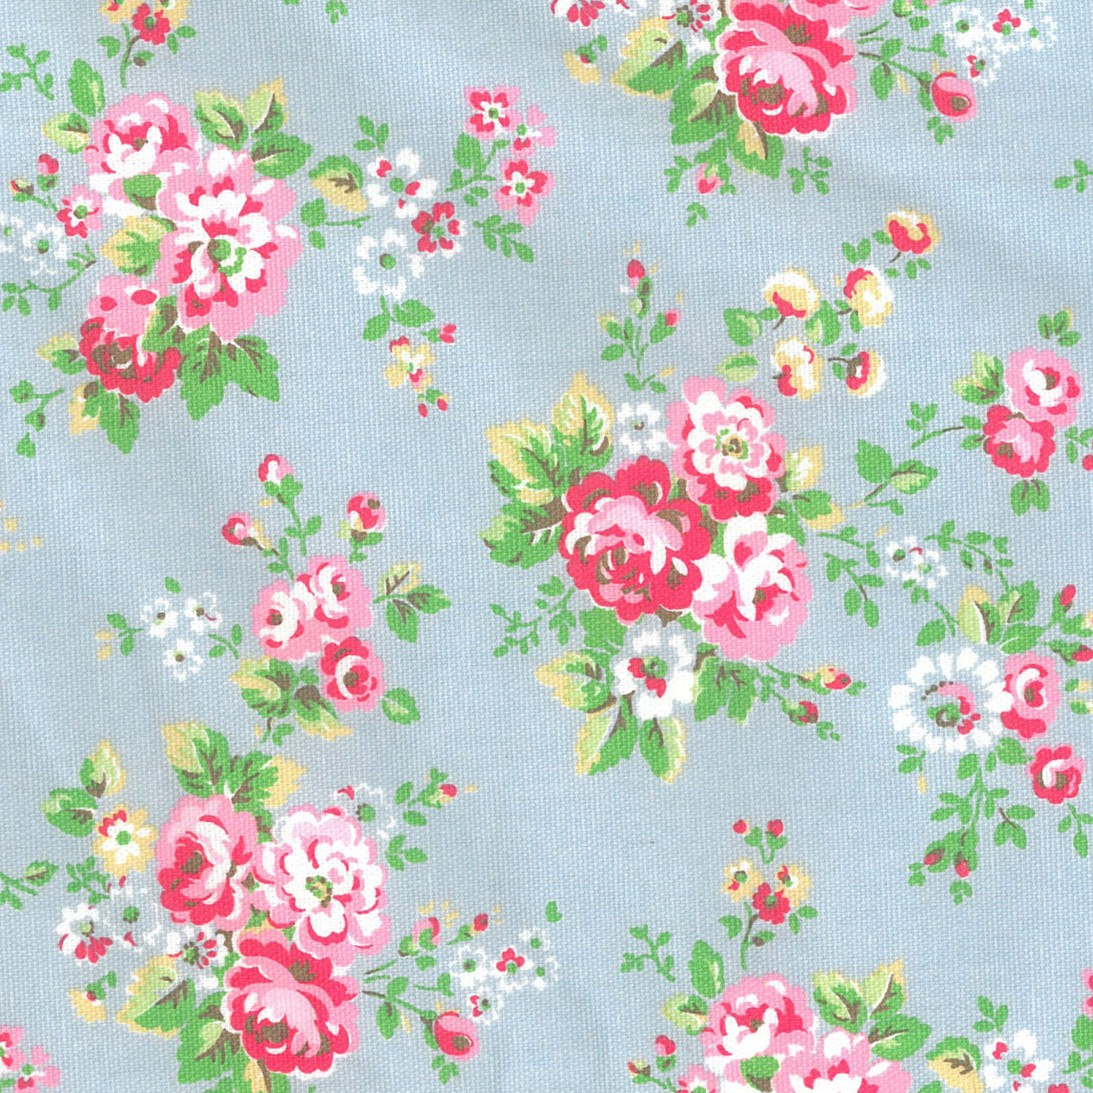 Spray Flowers - Blue - Cath Kidston blue cotton fabric with pink and green floral print